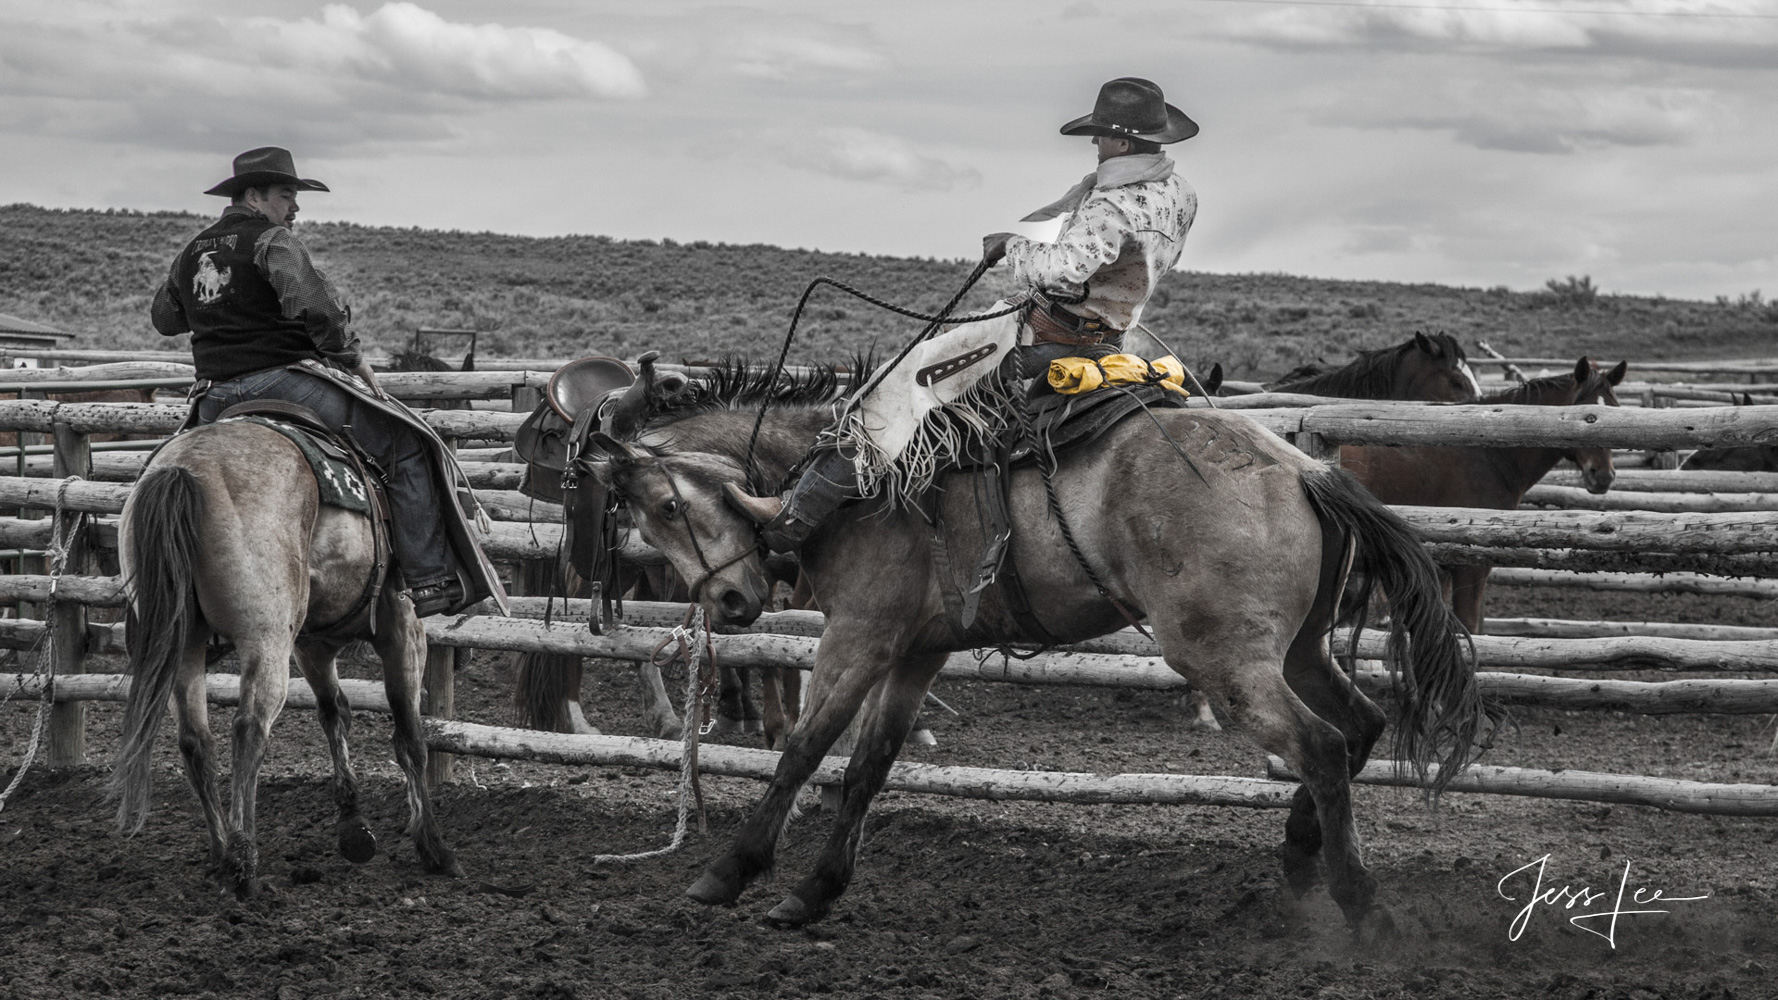 Fine Art Limited Edition Photography of Cowboys, Horses and life in the West. photo of Colorado cowboy bucking out a horse fresh...